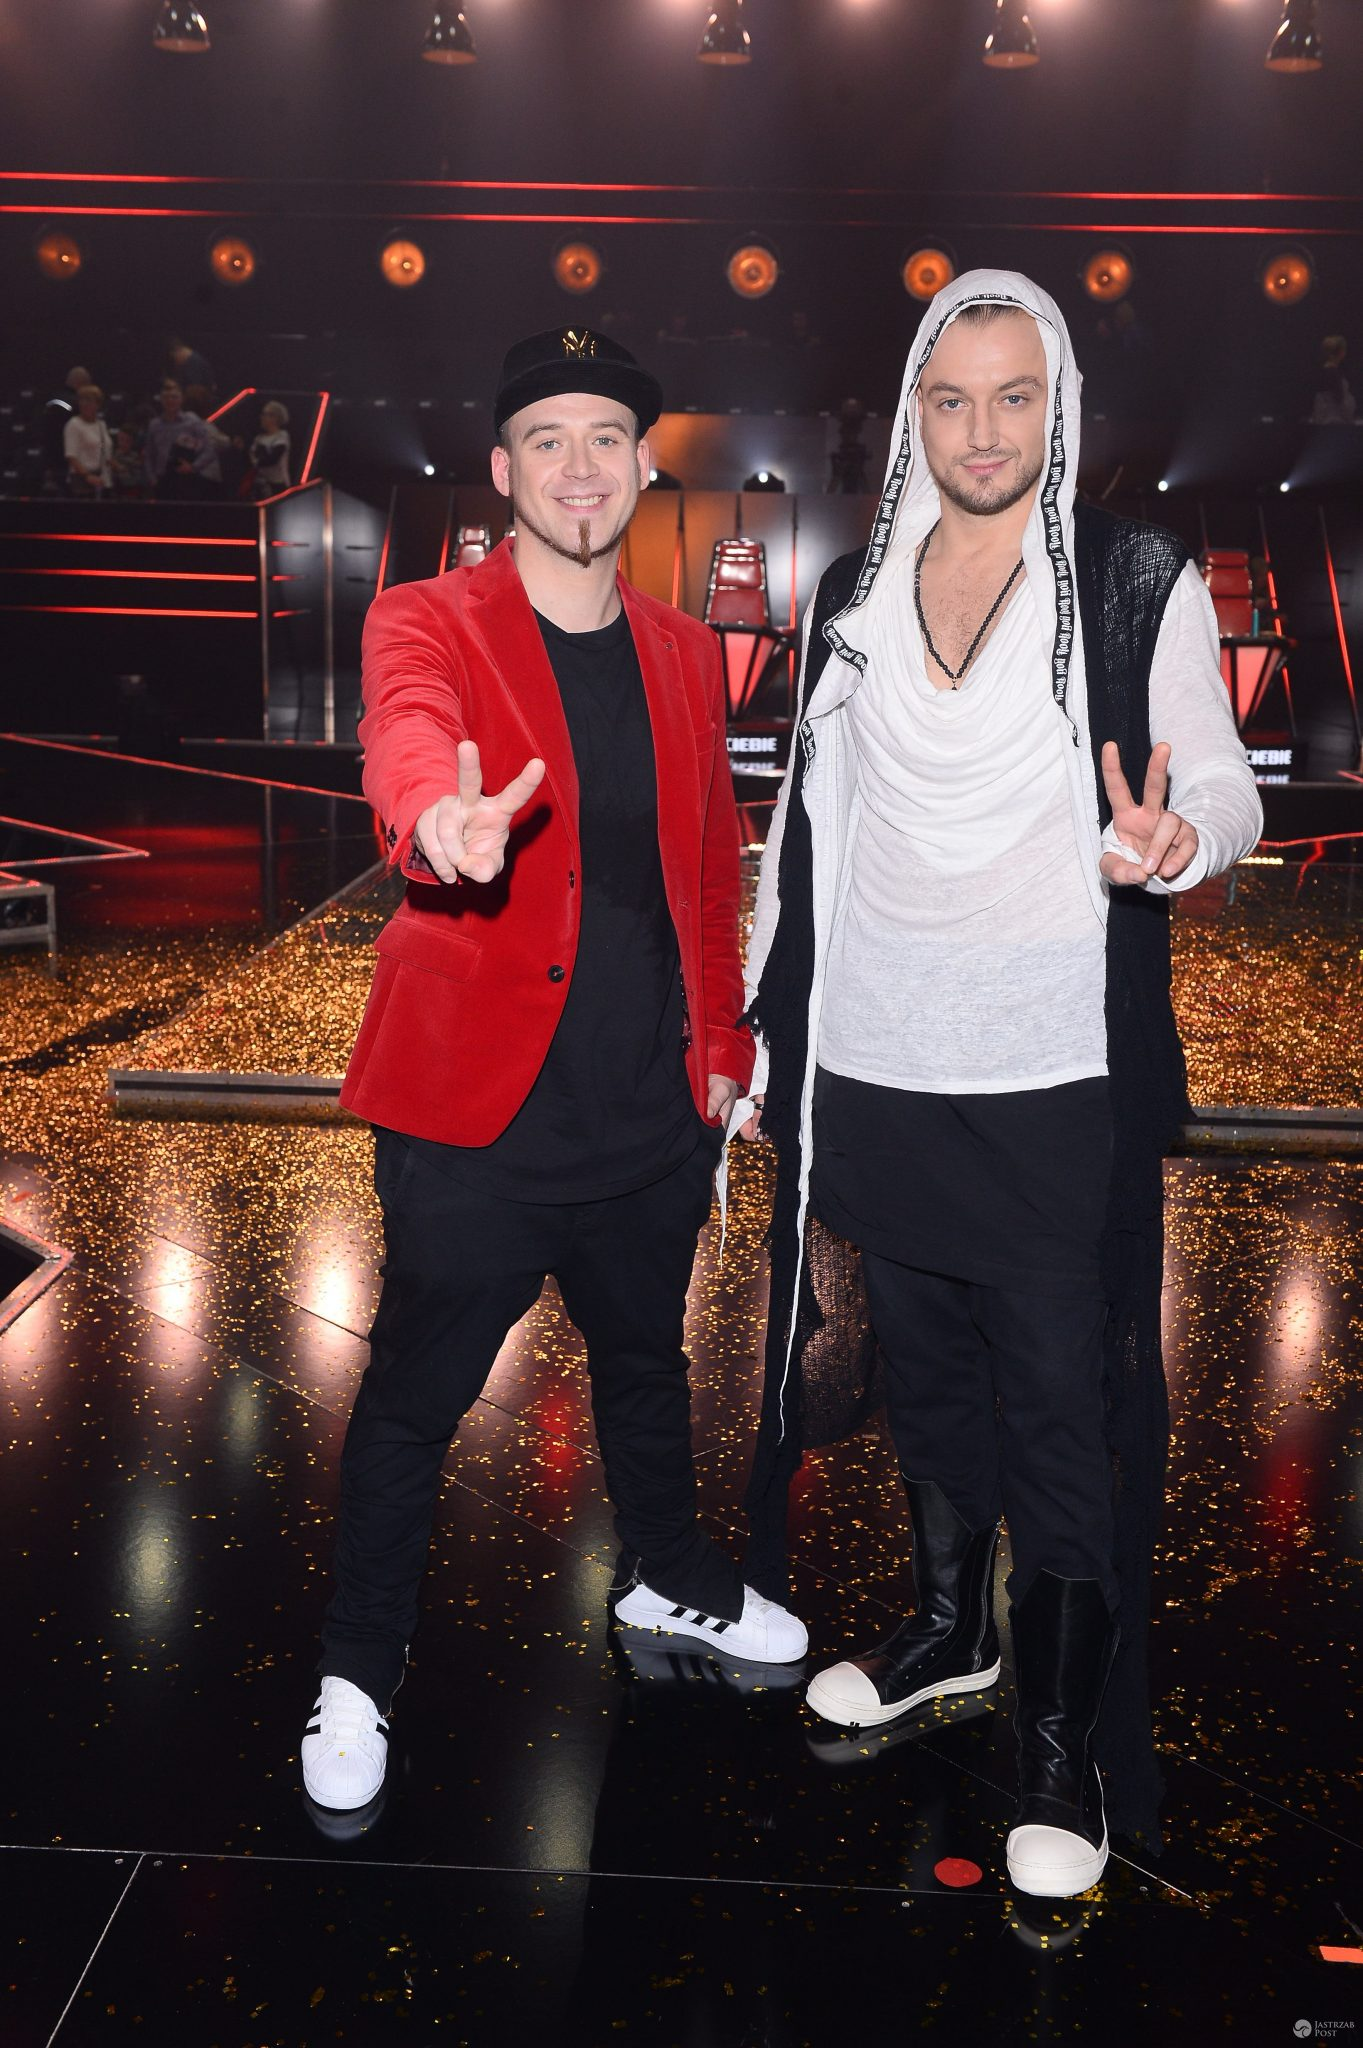 Tomson i Baron - finał The Voice of Poland 7 (2016)